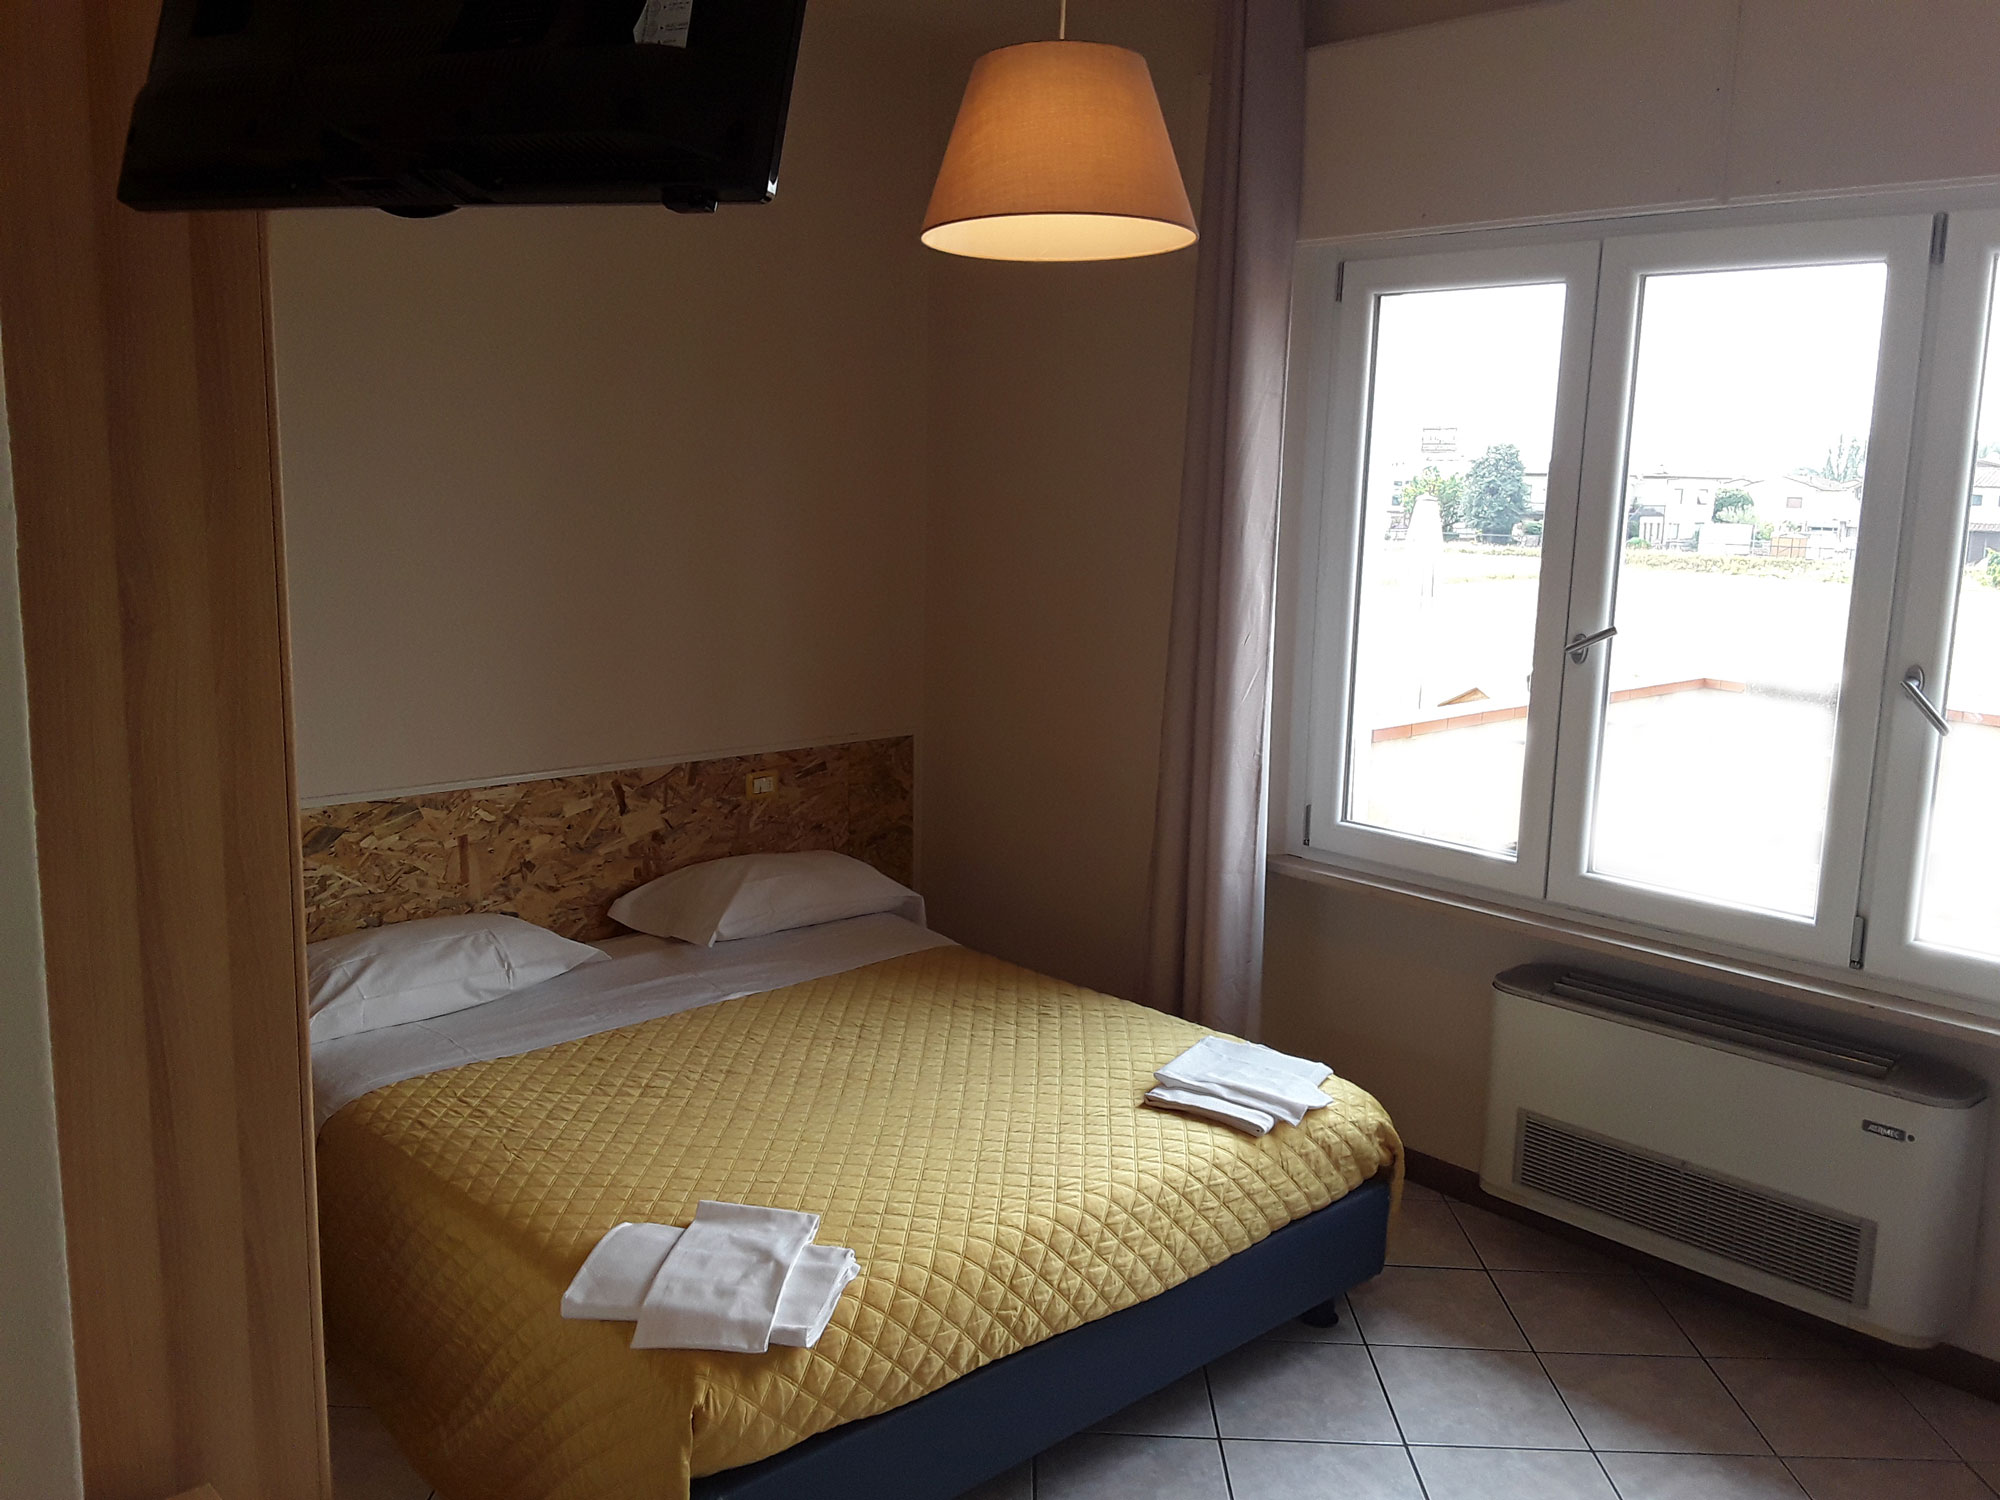 Bed & Breakfast lucca